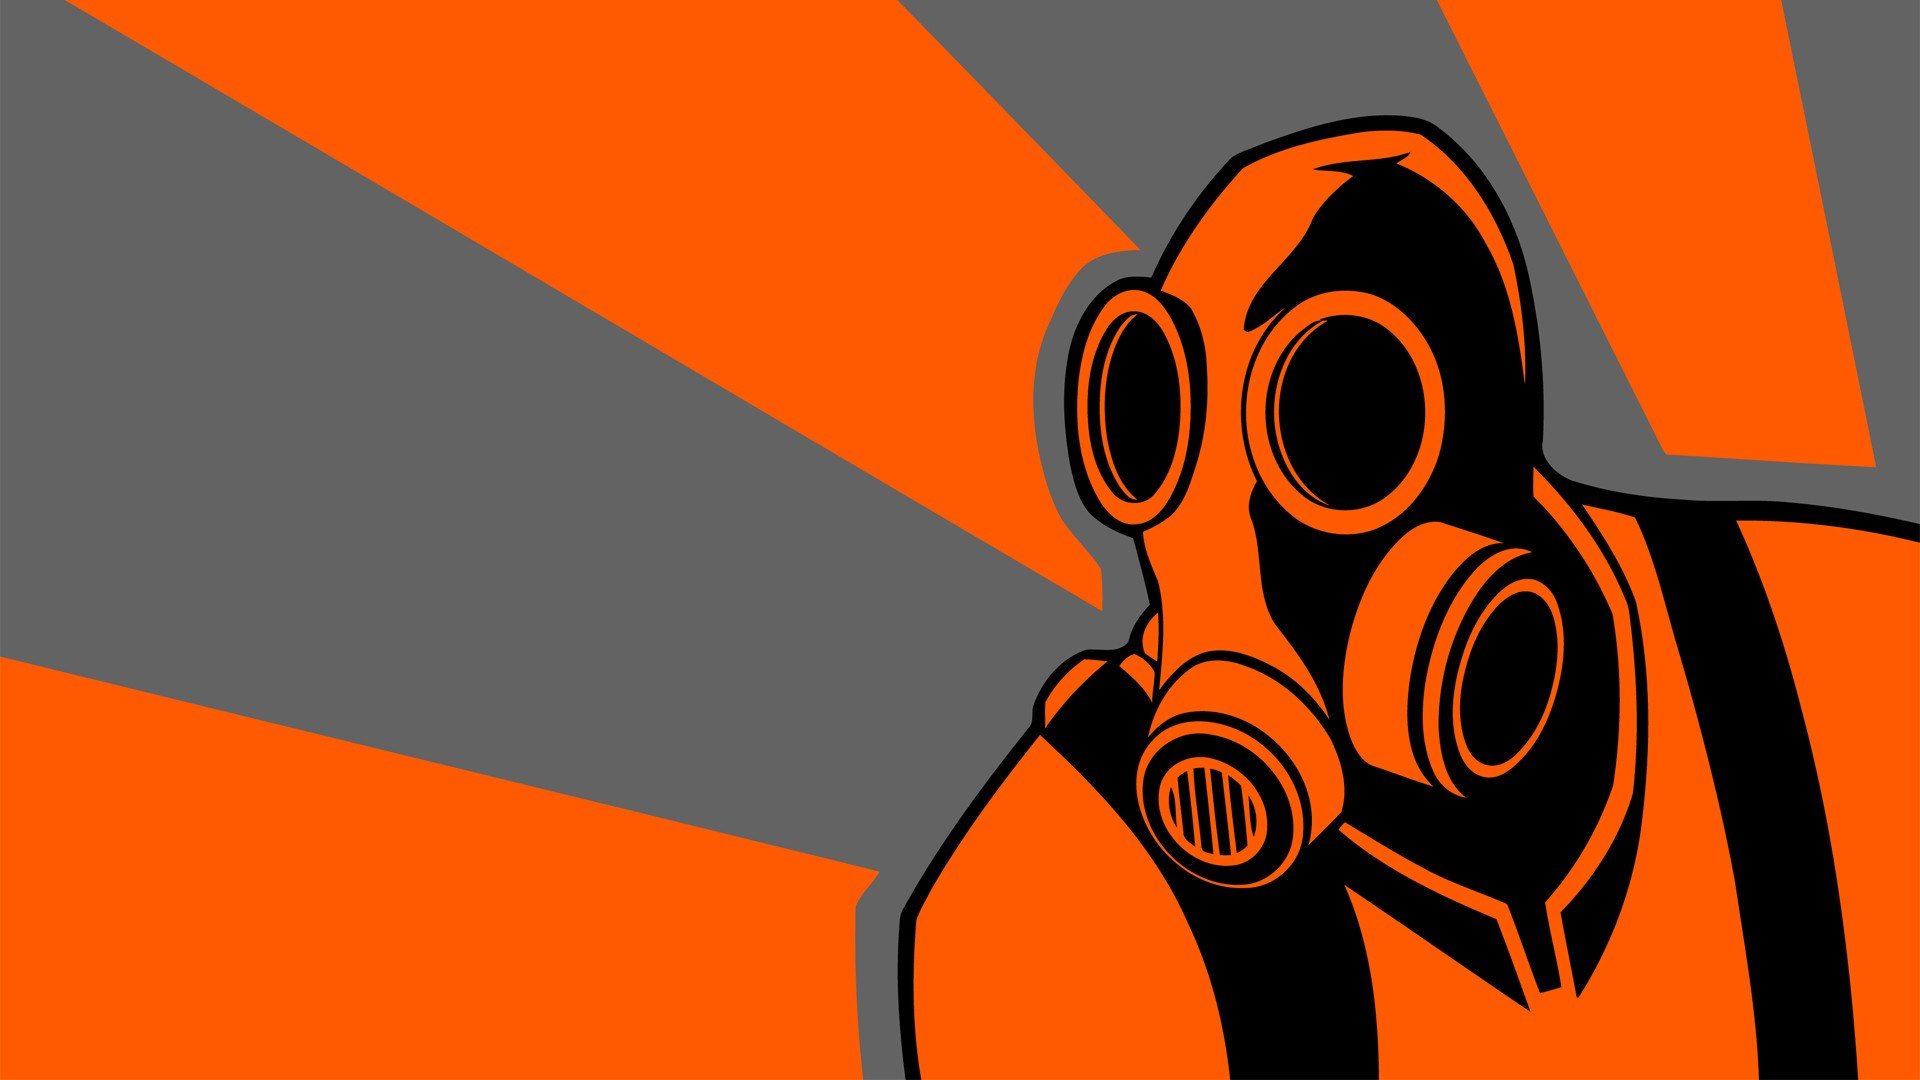 Gas Mask clipart mac Gas pictures 1920x1080 Pinterest hueputalo